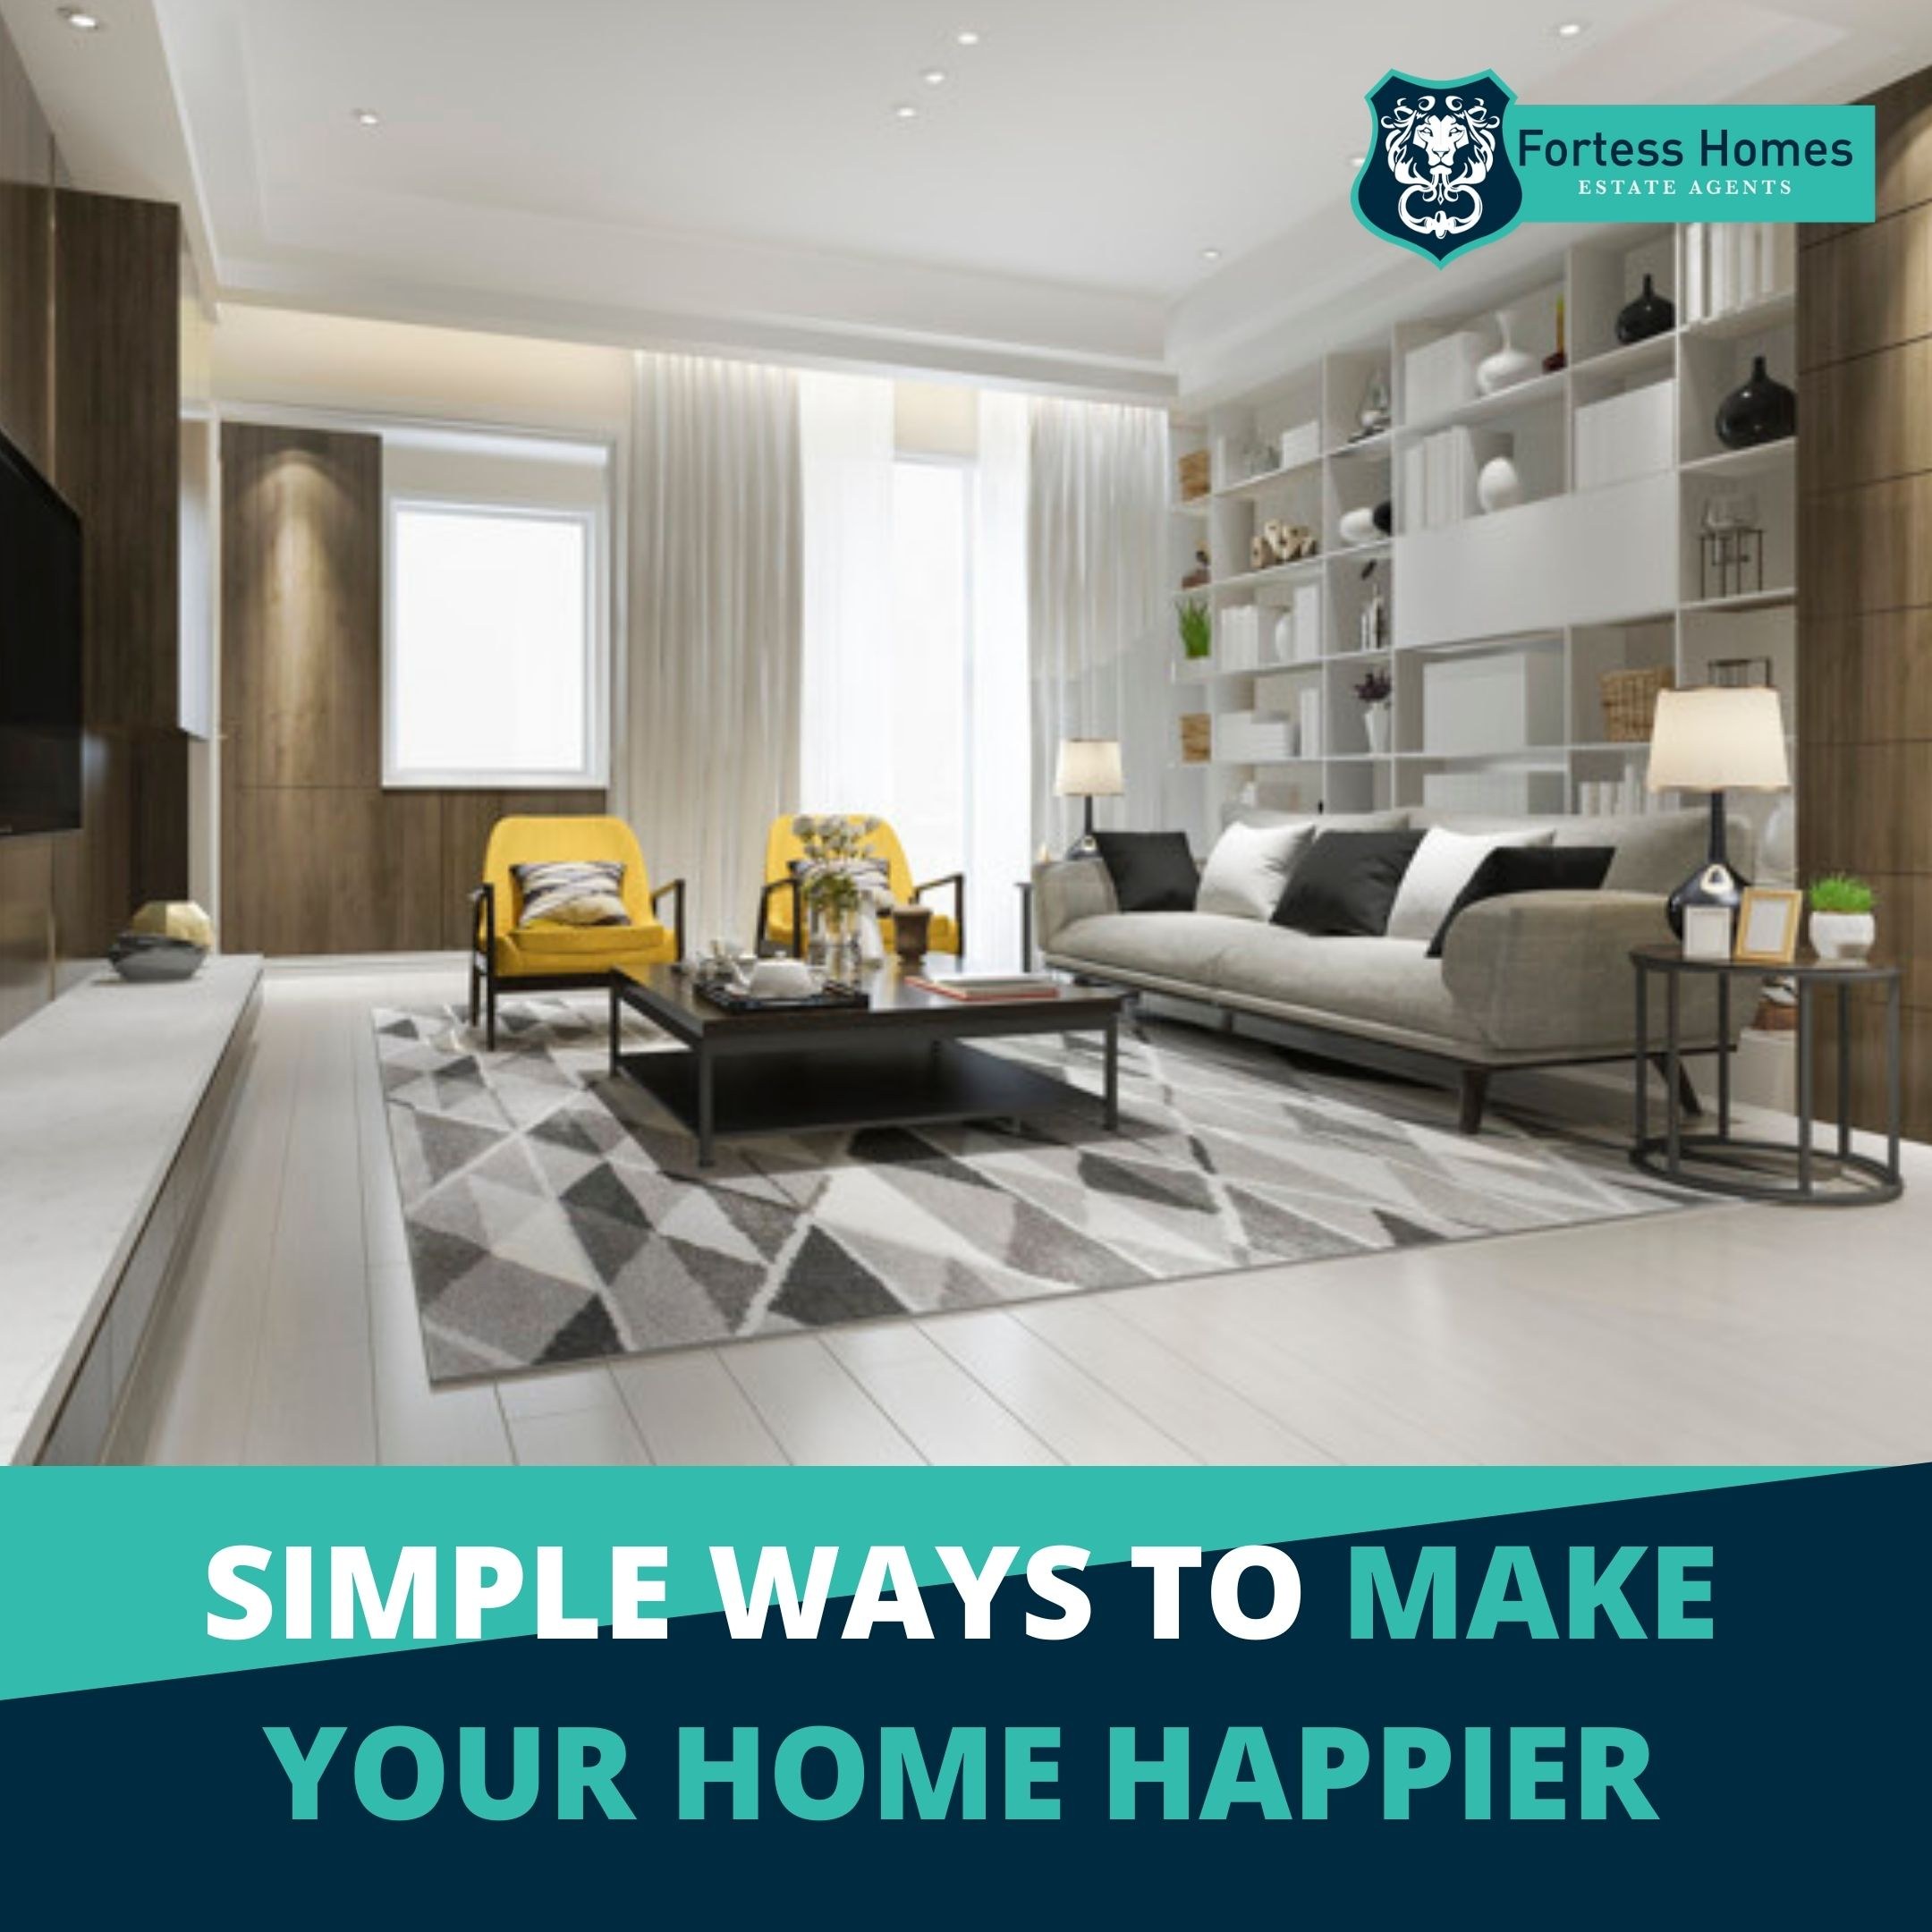 SIMPLE WAYS TO MAKE YOUR HOME HAPPIER